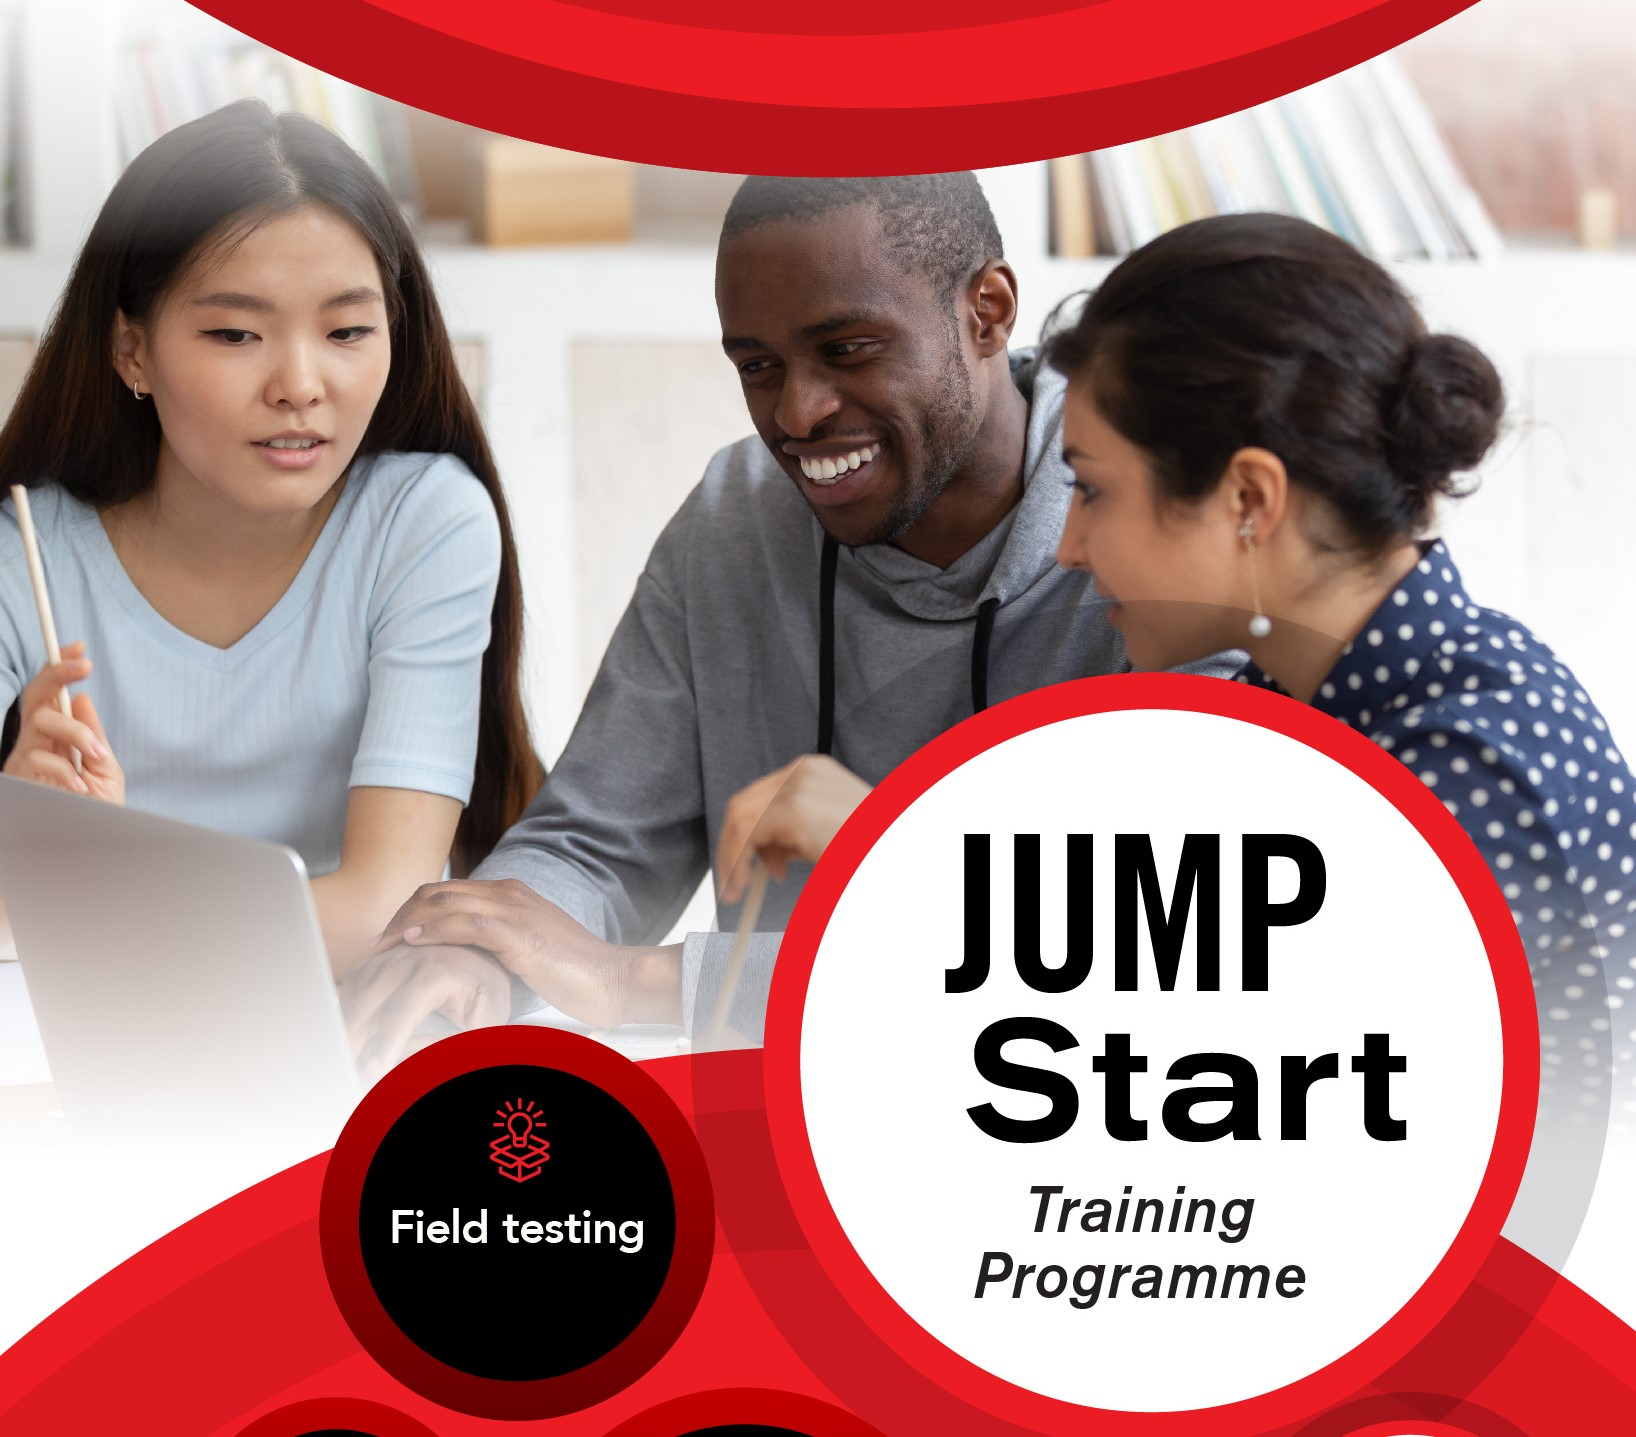 JumpSTART Training Programme